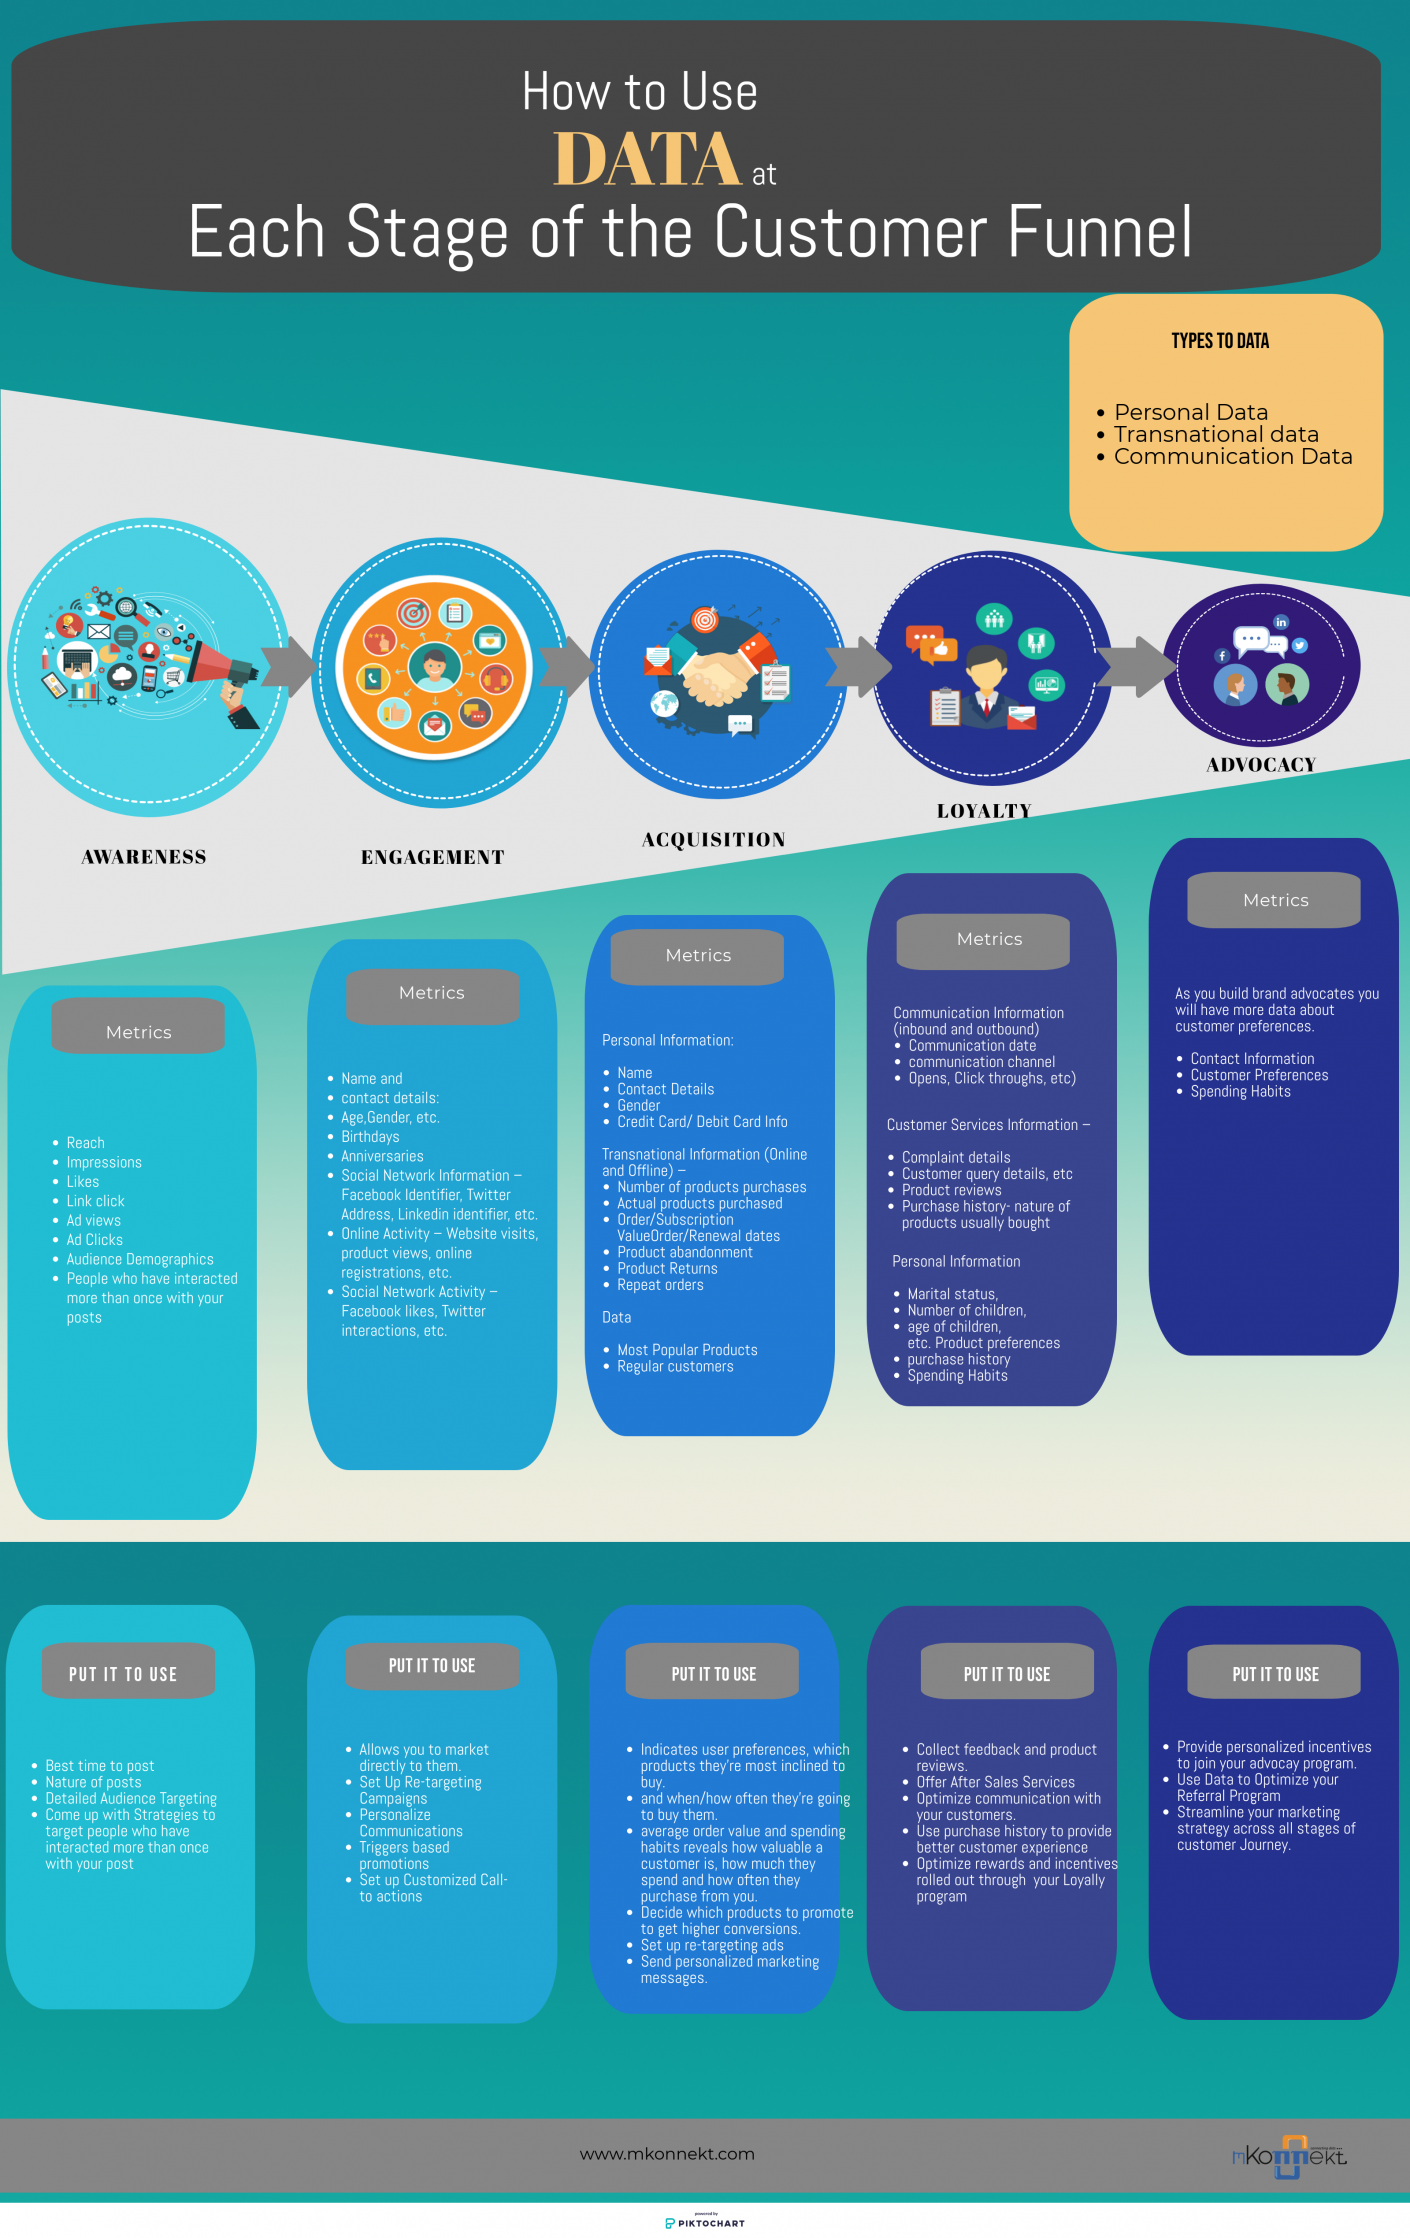 How to use customer data at each stage of the funnel infographic